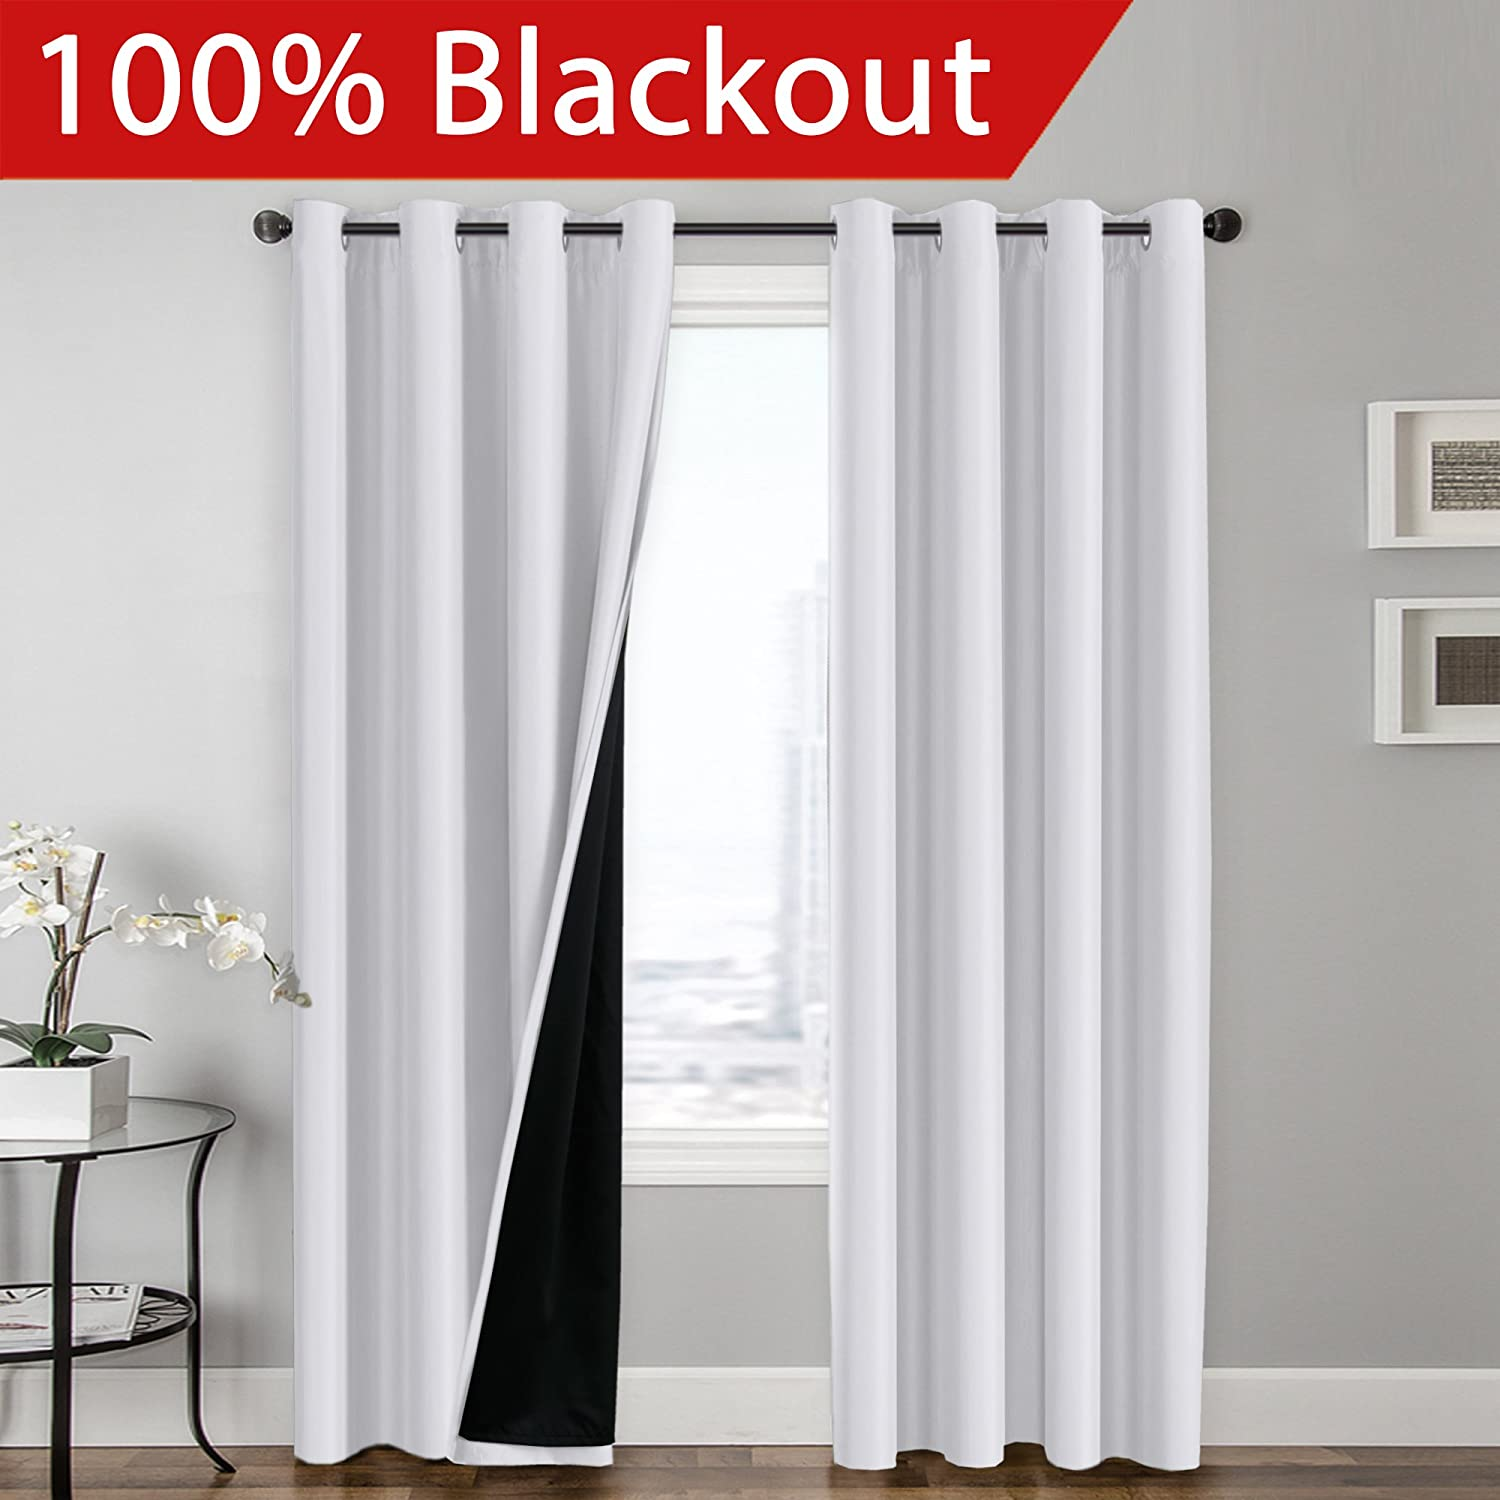 FlamingoP Full Blackout White Curtains Faux Silk Satin with Black Liner Thermal Insulated Window Treatment Panels, Grommet Top